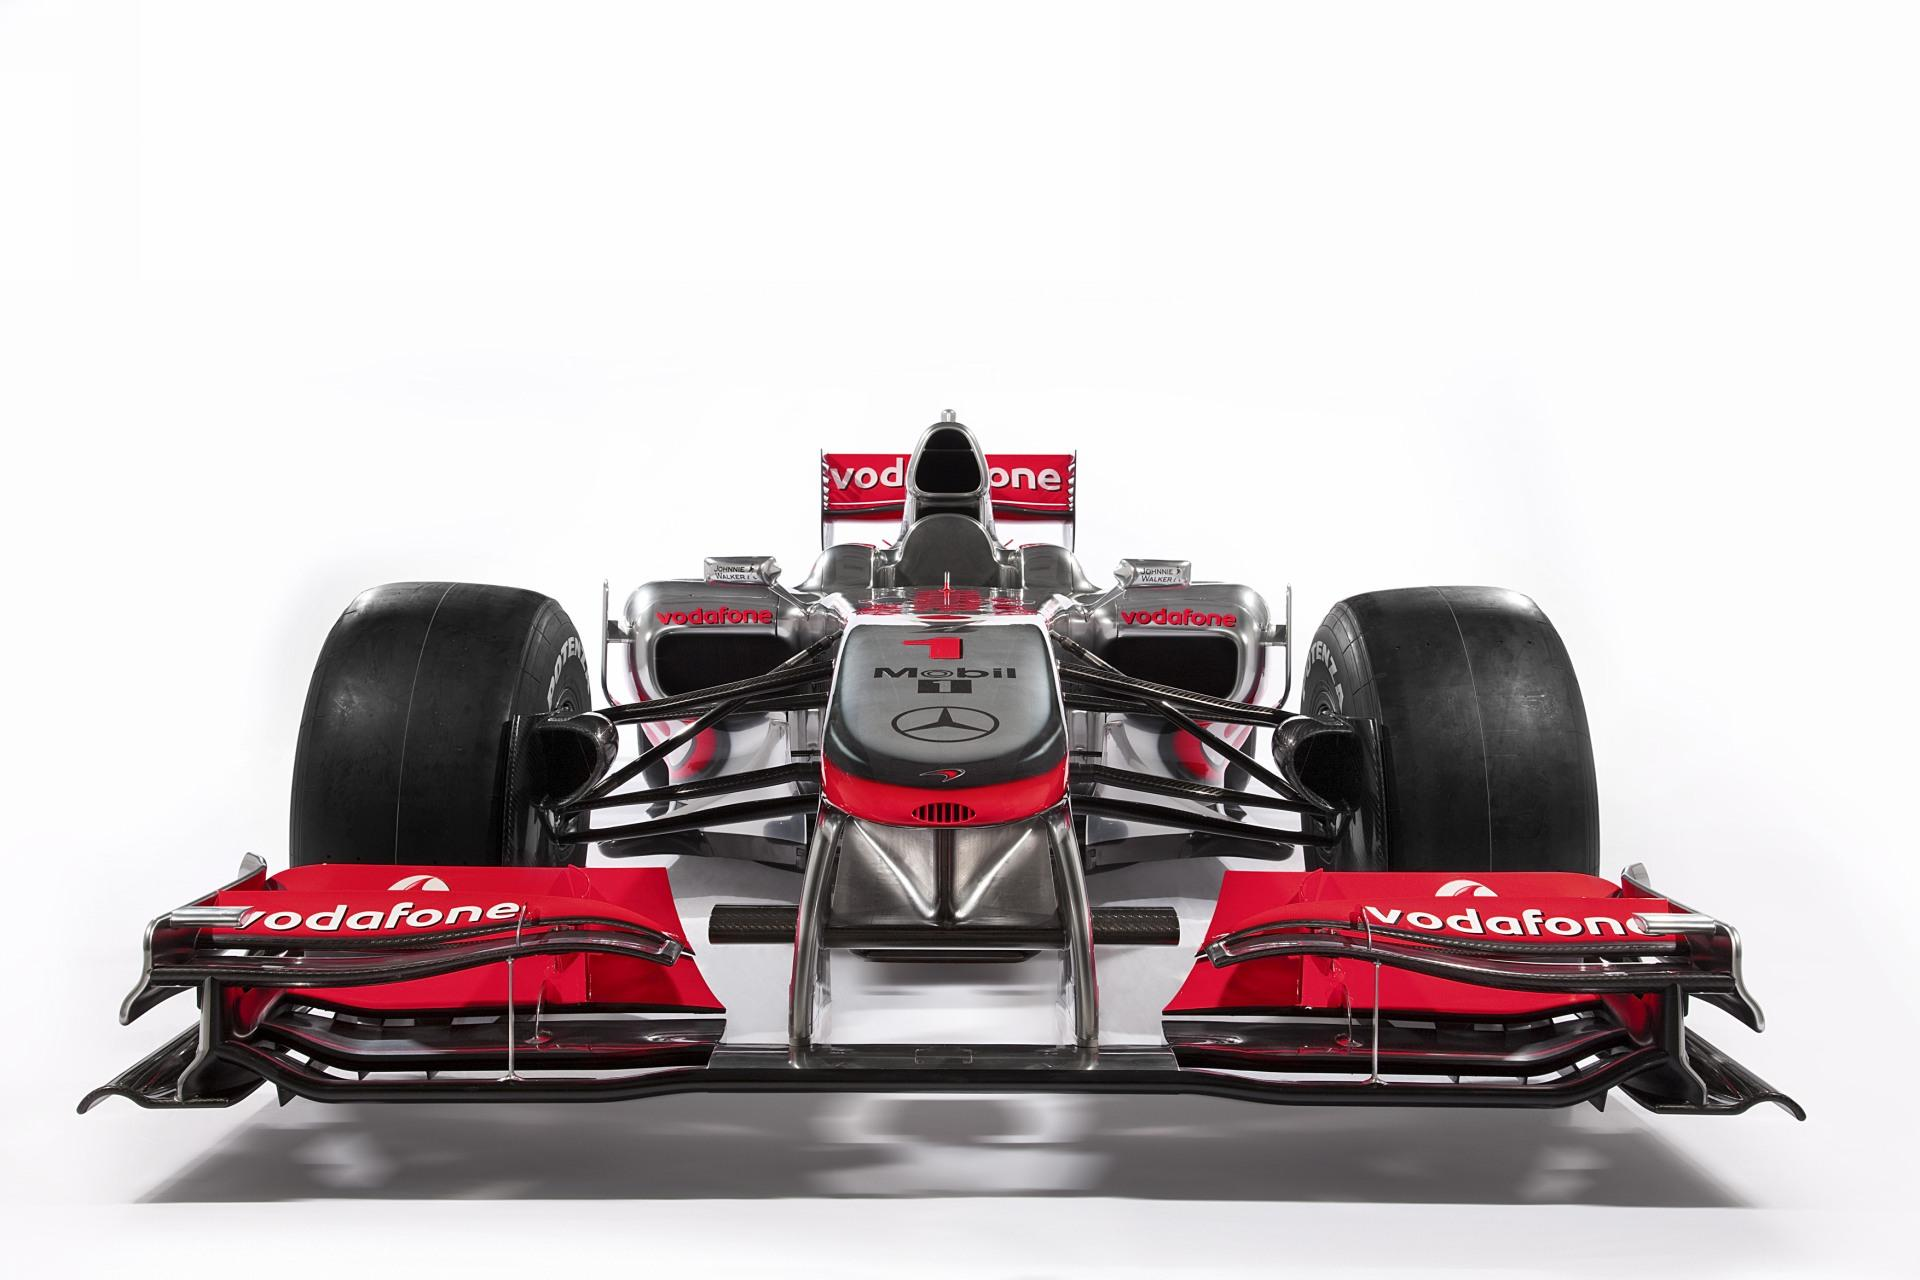 2010 mclaren mp4-25 news and information, research, and pricing